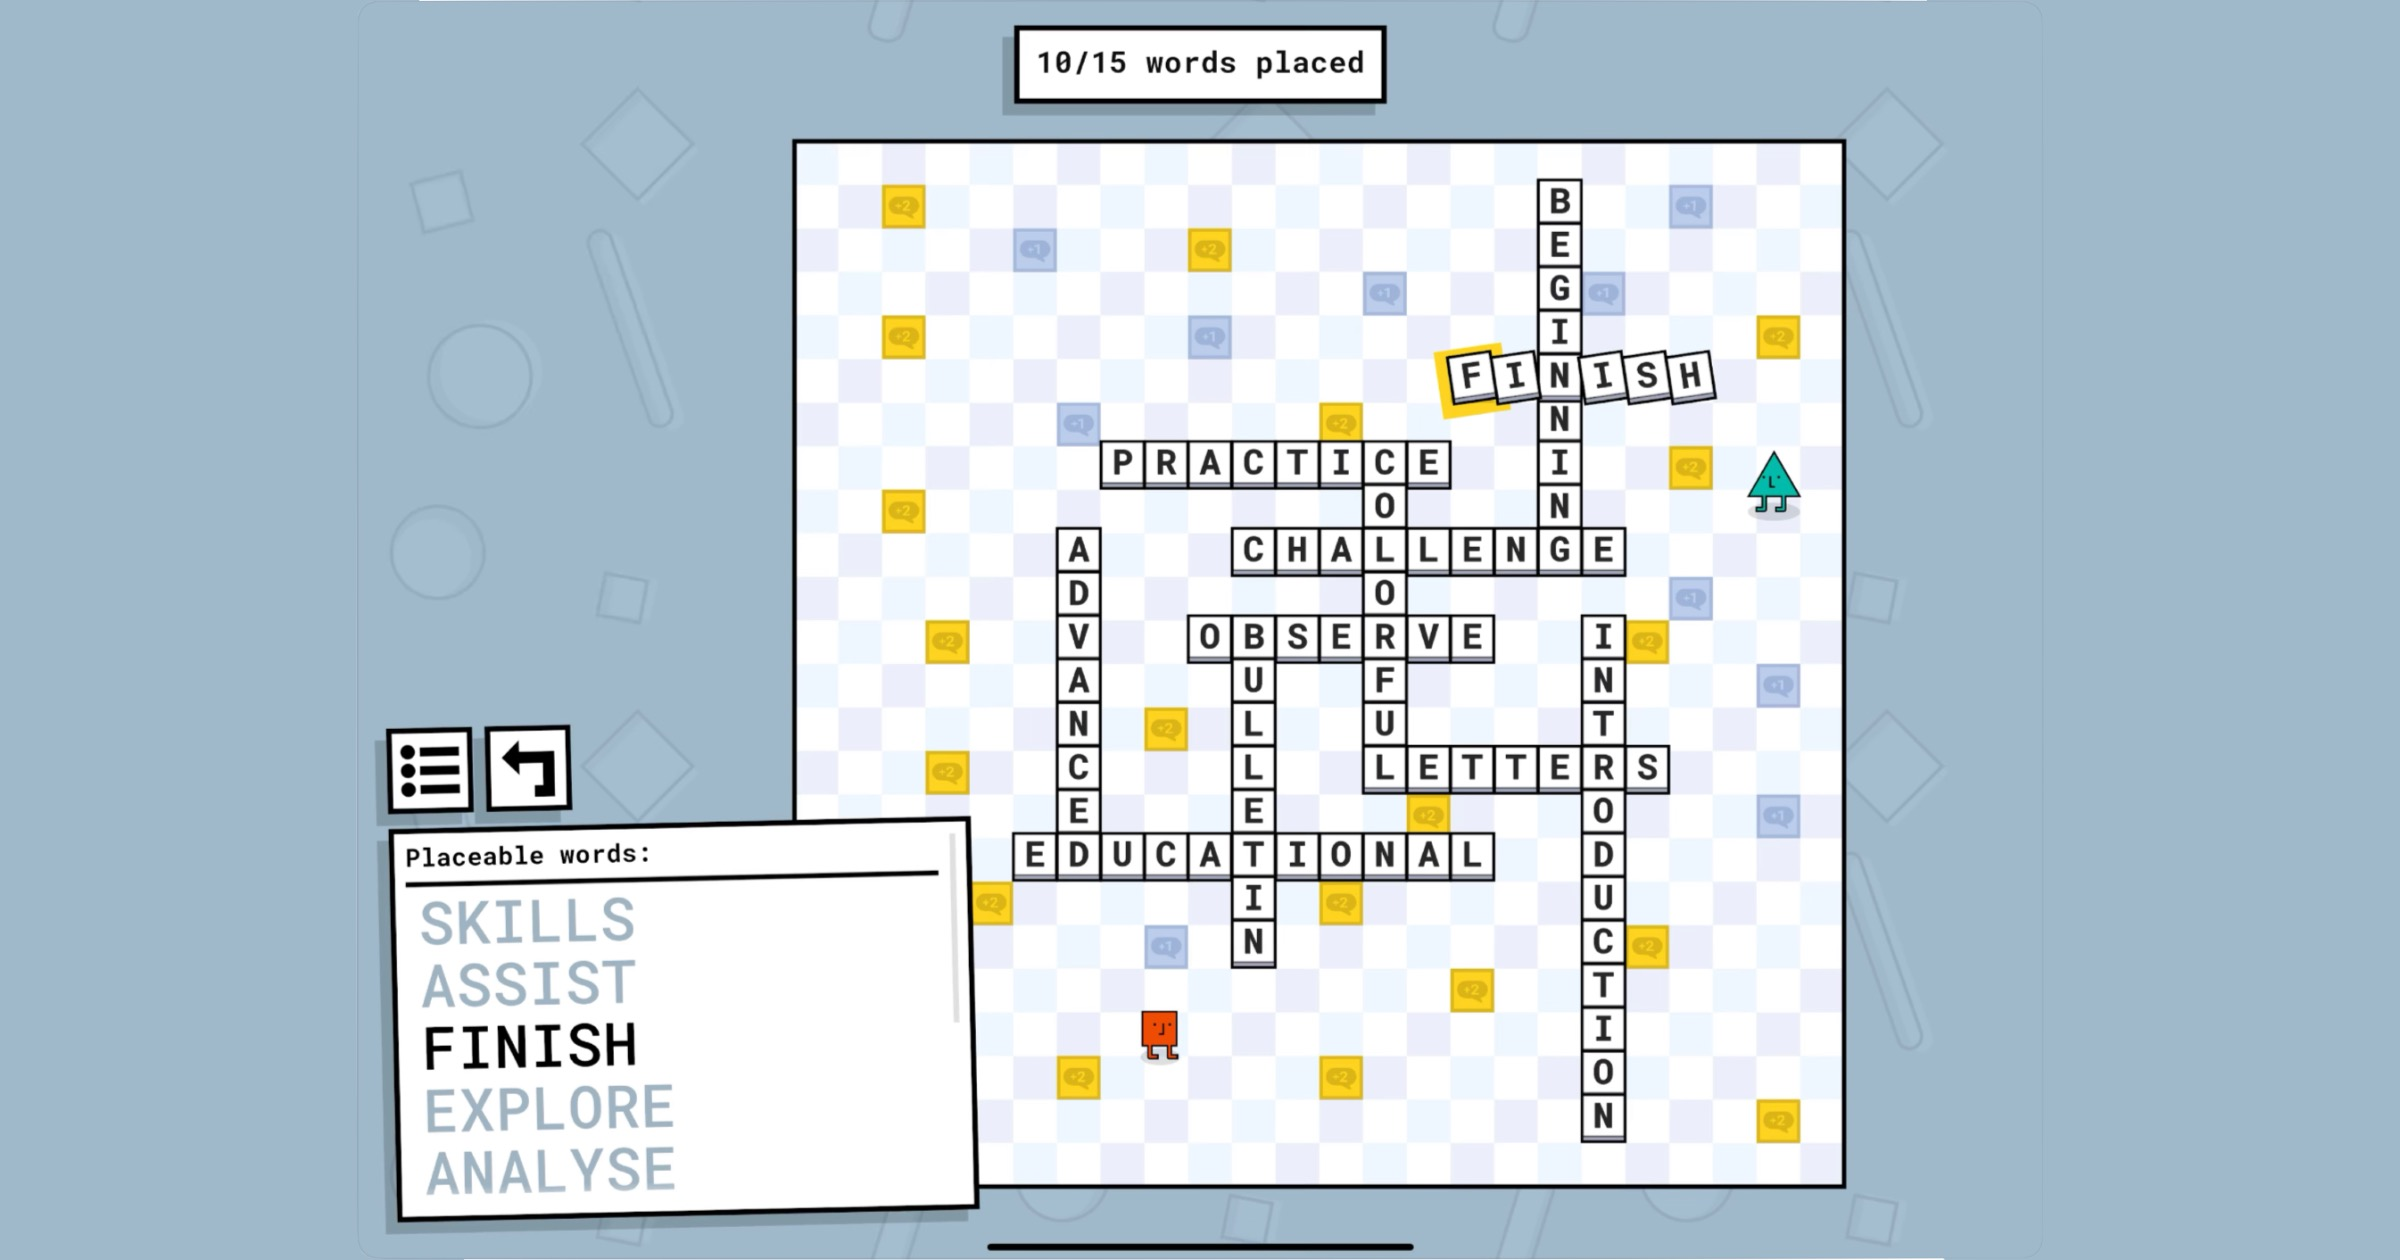 Scrabble-Like Game 'wurdweb' Now Available on Apple Arcade